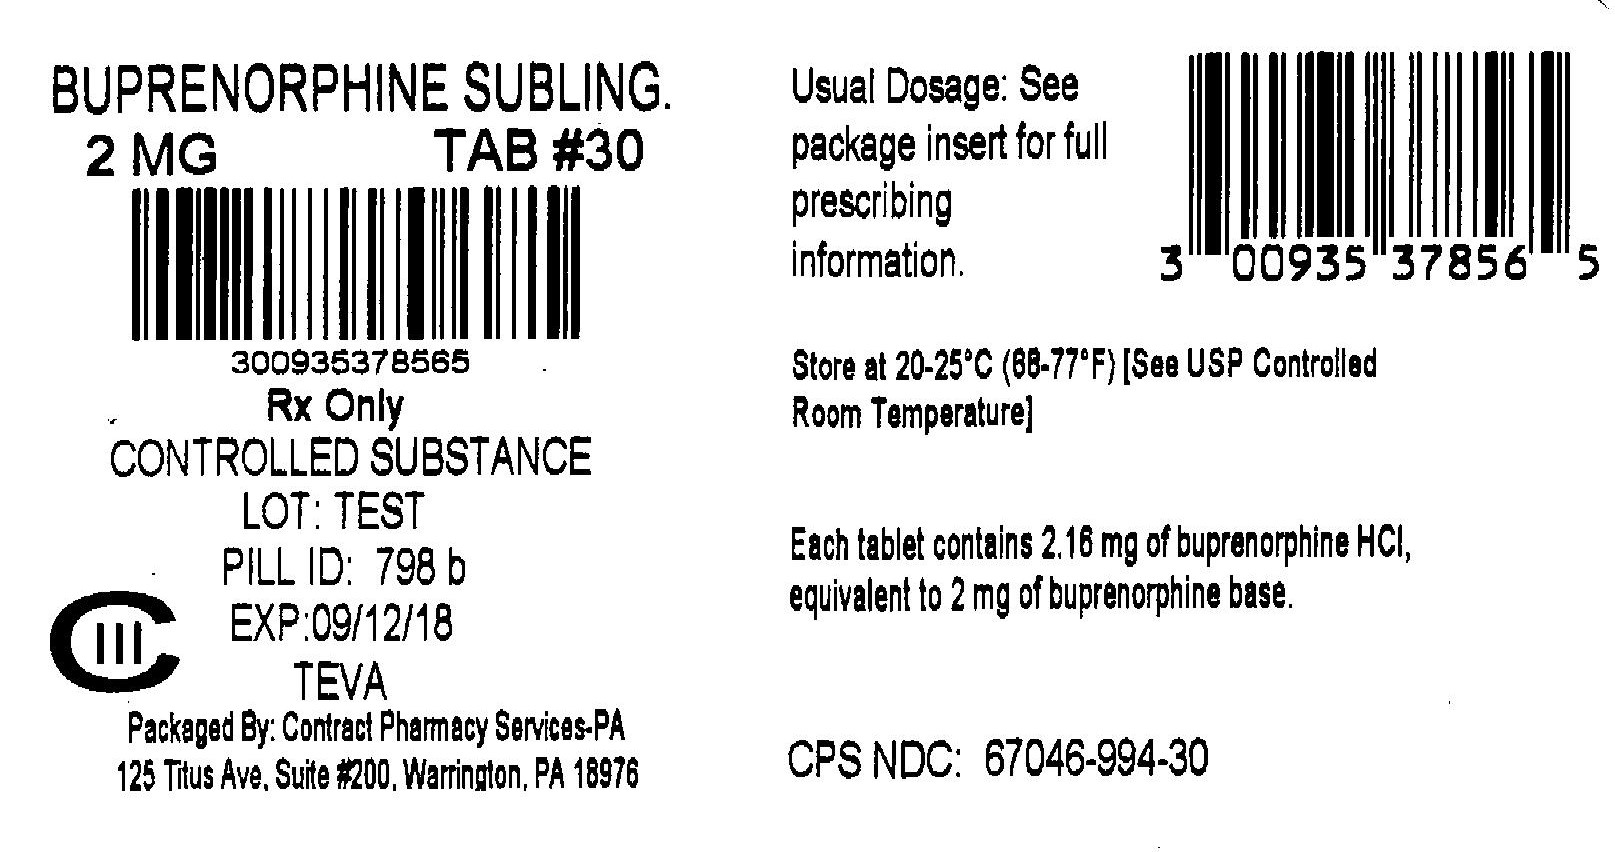 Buprenorphine Hydrochloride Sublingual Tablets 2 mg 30s Label